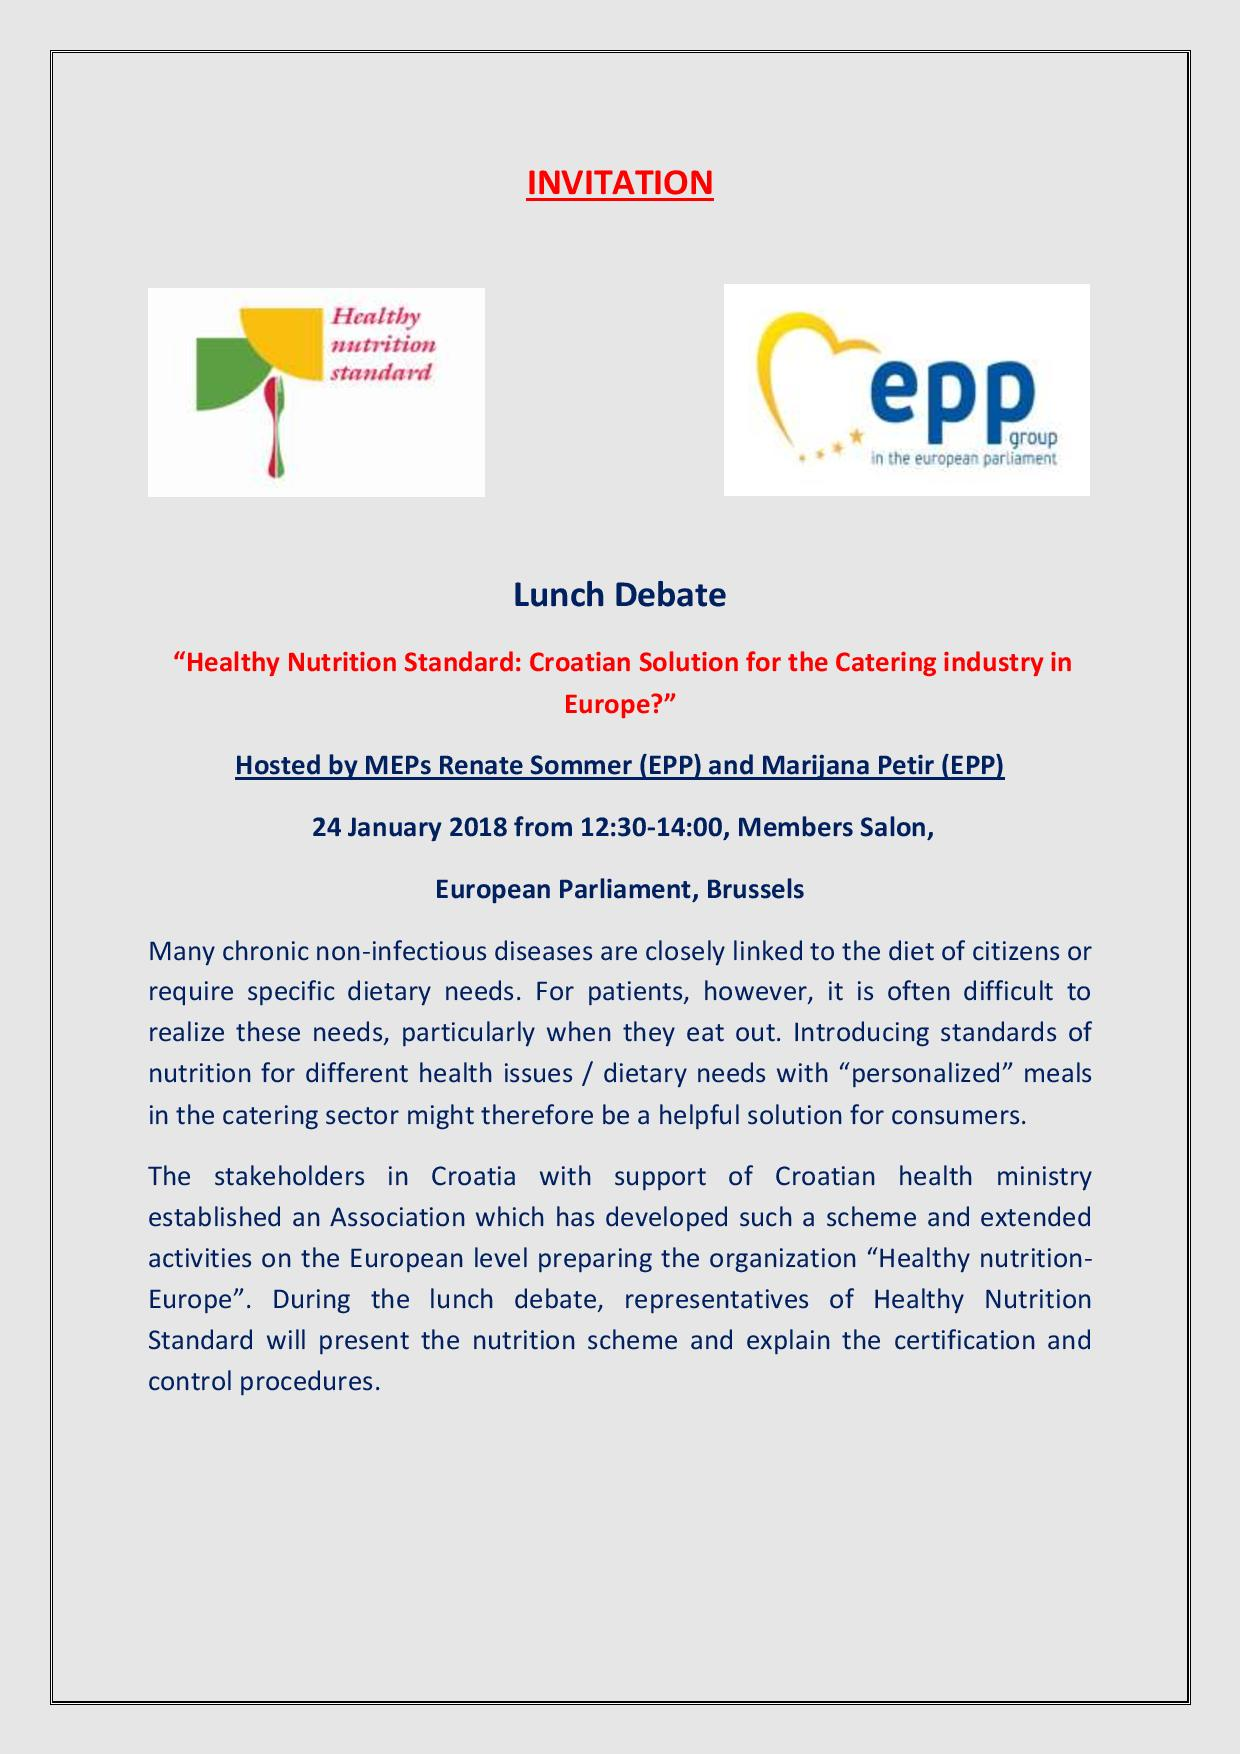 DR.BURA INVITED TO EU PARLIAMENT TO SPEAK ON LUNCH DEBATE : HEALTHY NUTRITION STANDARD: CROATIAN SOLUTION FOR THE CATERING INDUSTRY IN EUROPE?